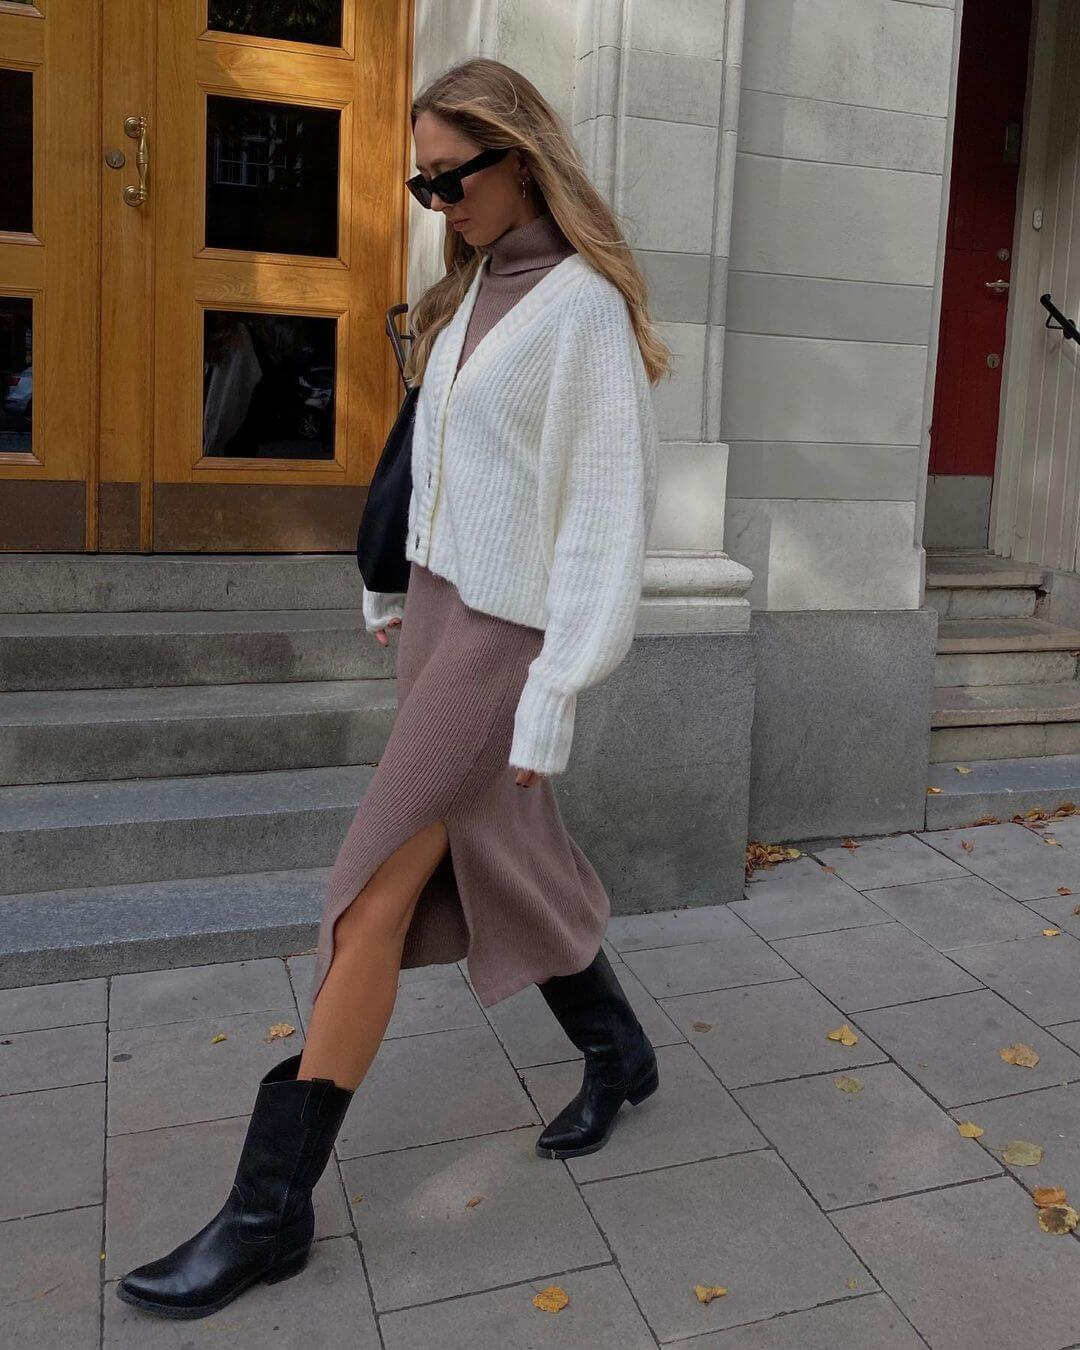 We're Obsessed With This Layered Knit Outfit